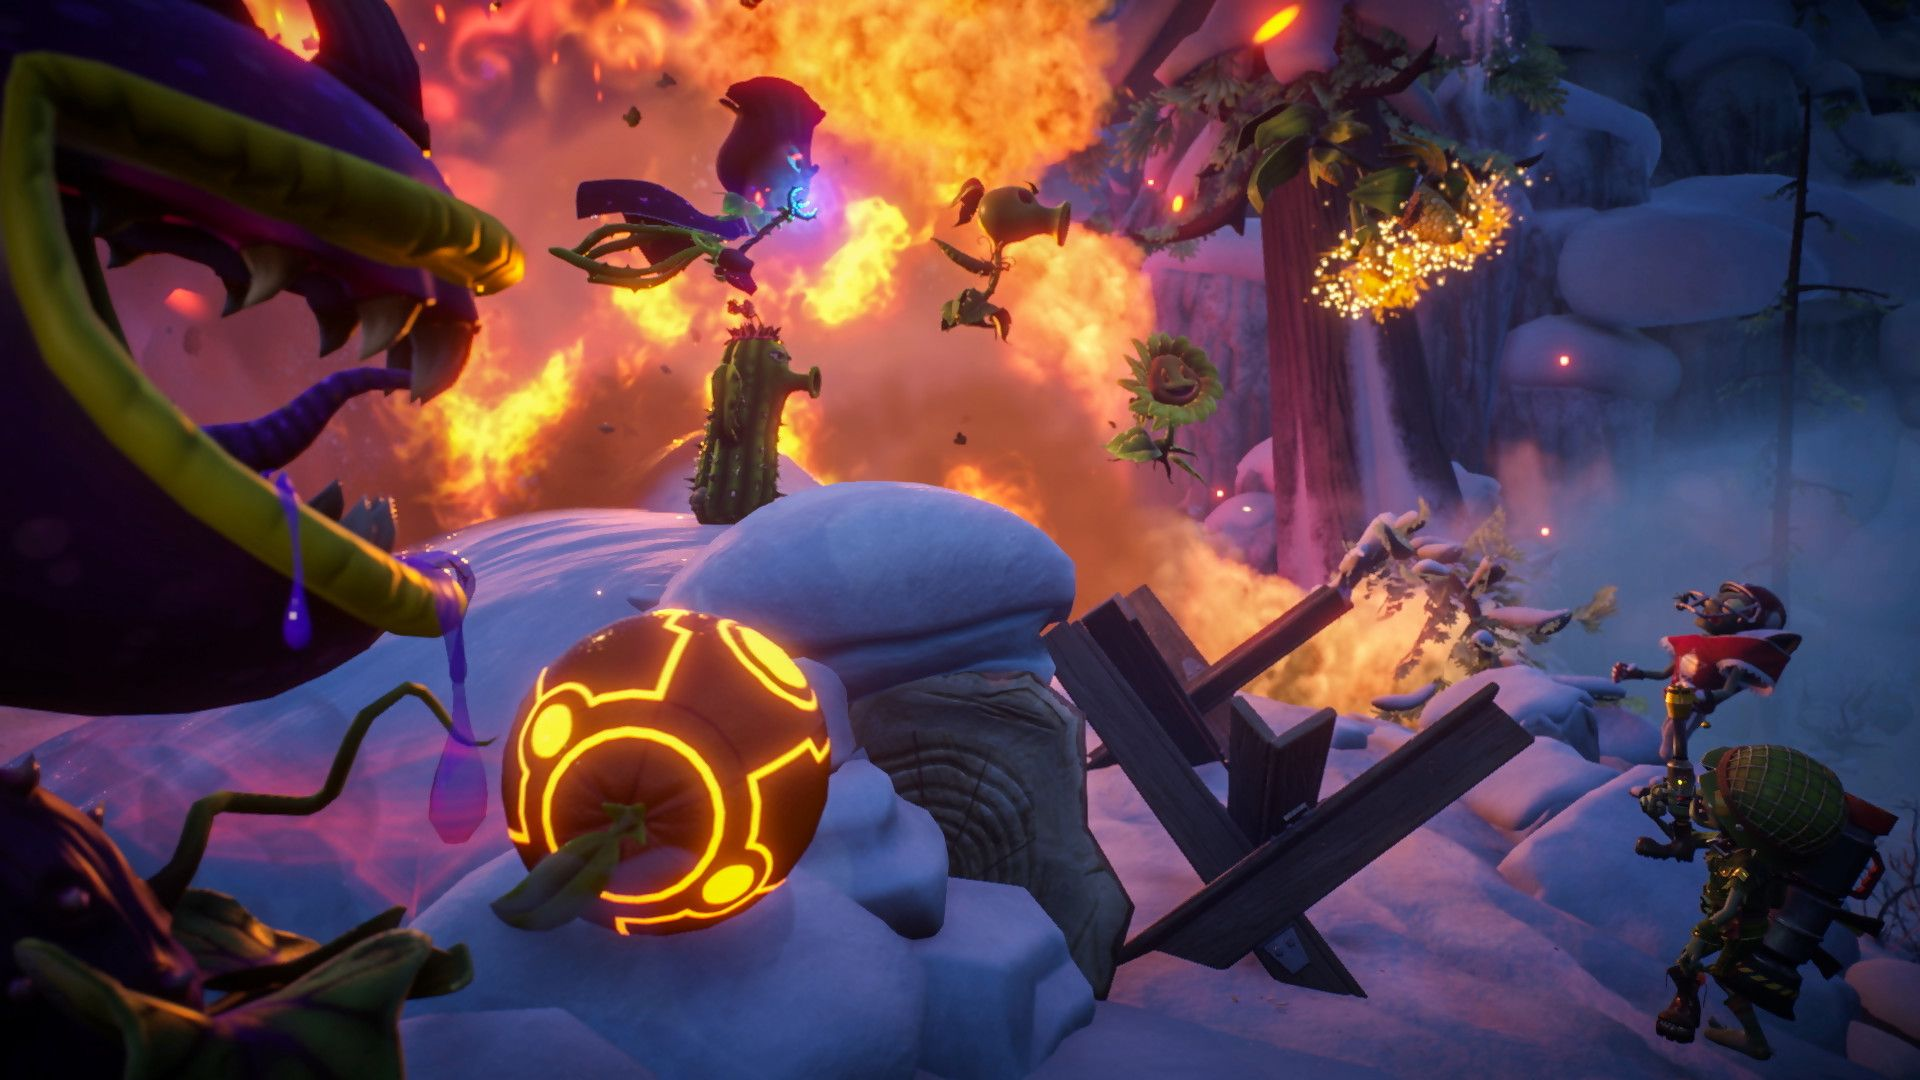 Check Out The Gameplay Trailer For Plants Vs Zombies Garden